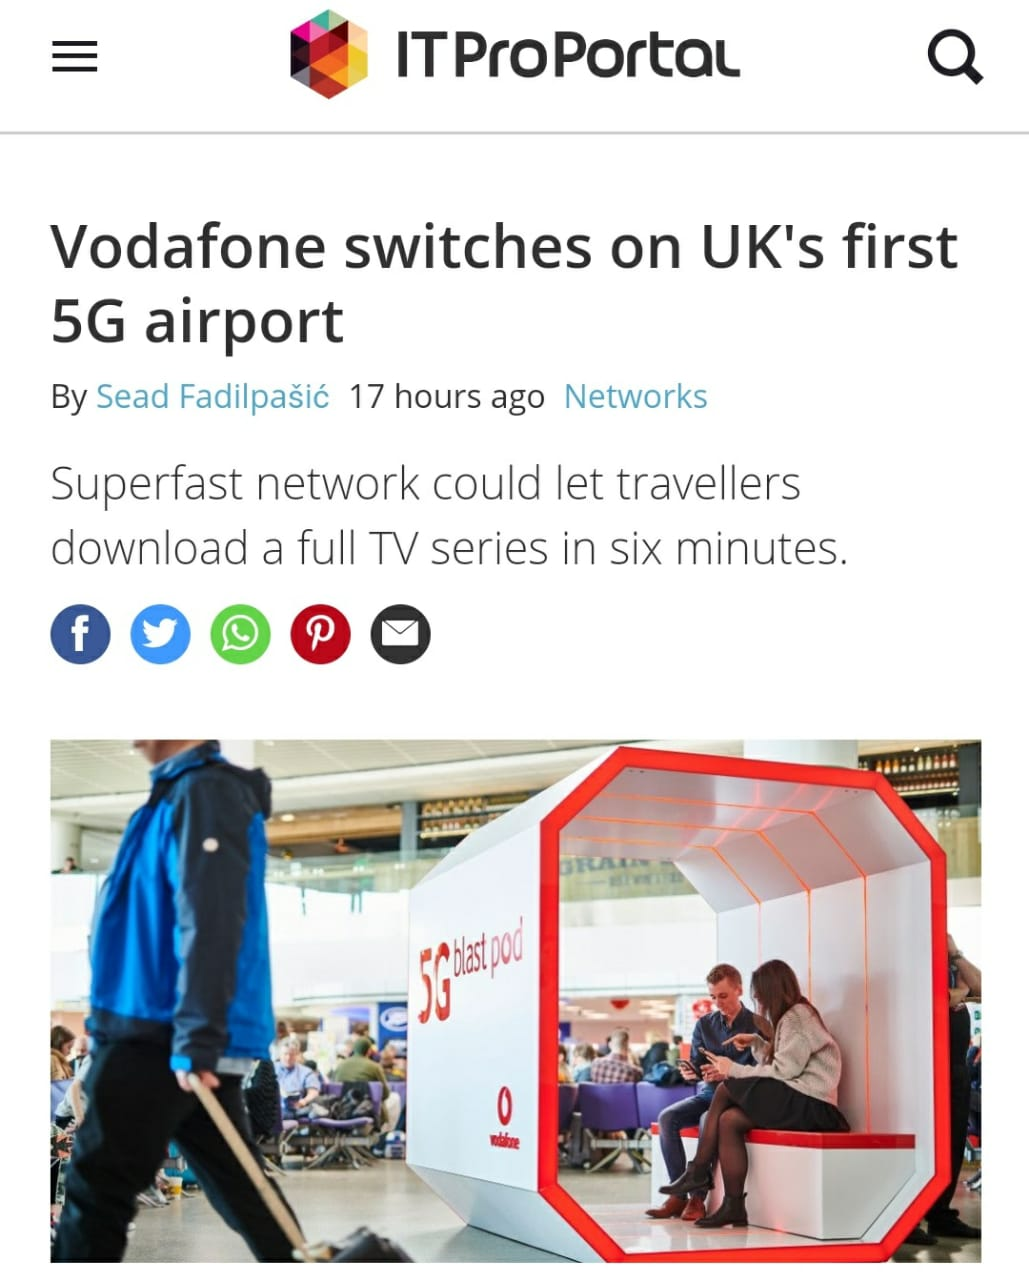 Vodafone switches on UK's first 5G airport - FIAKS